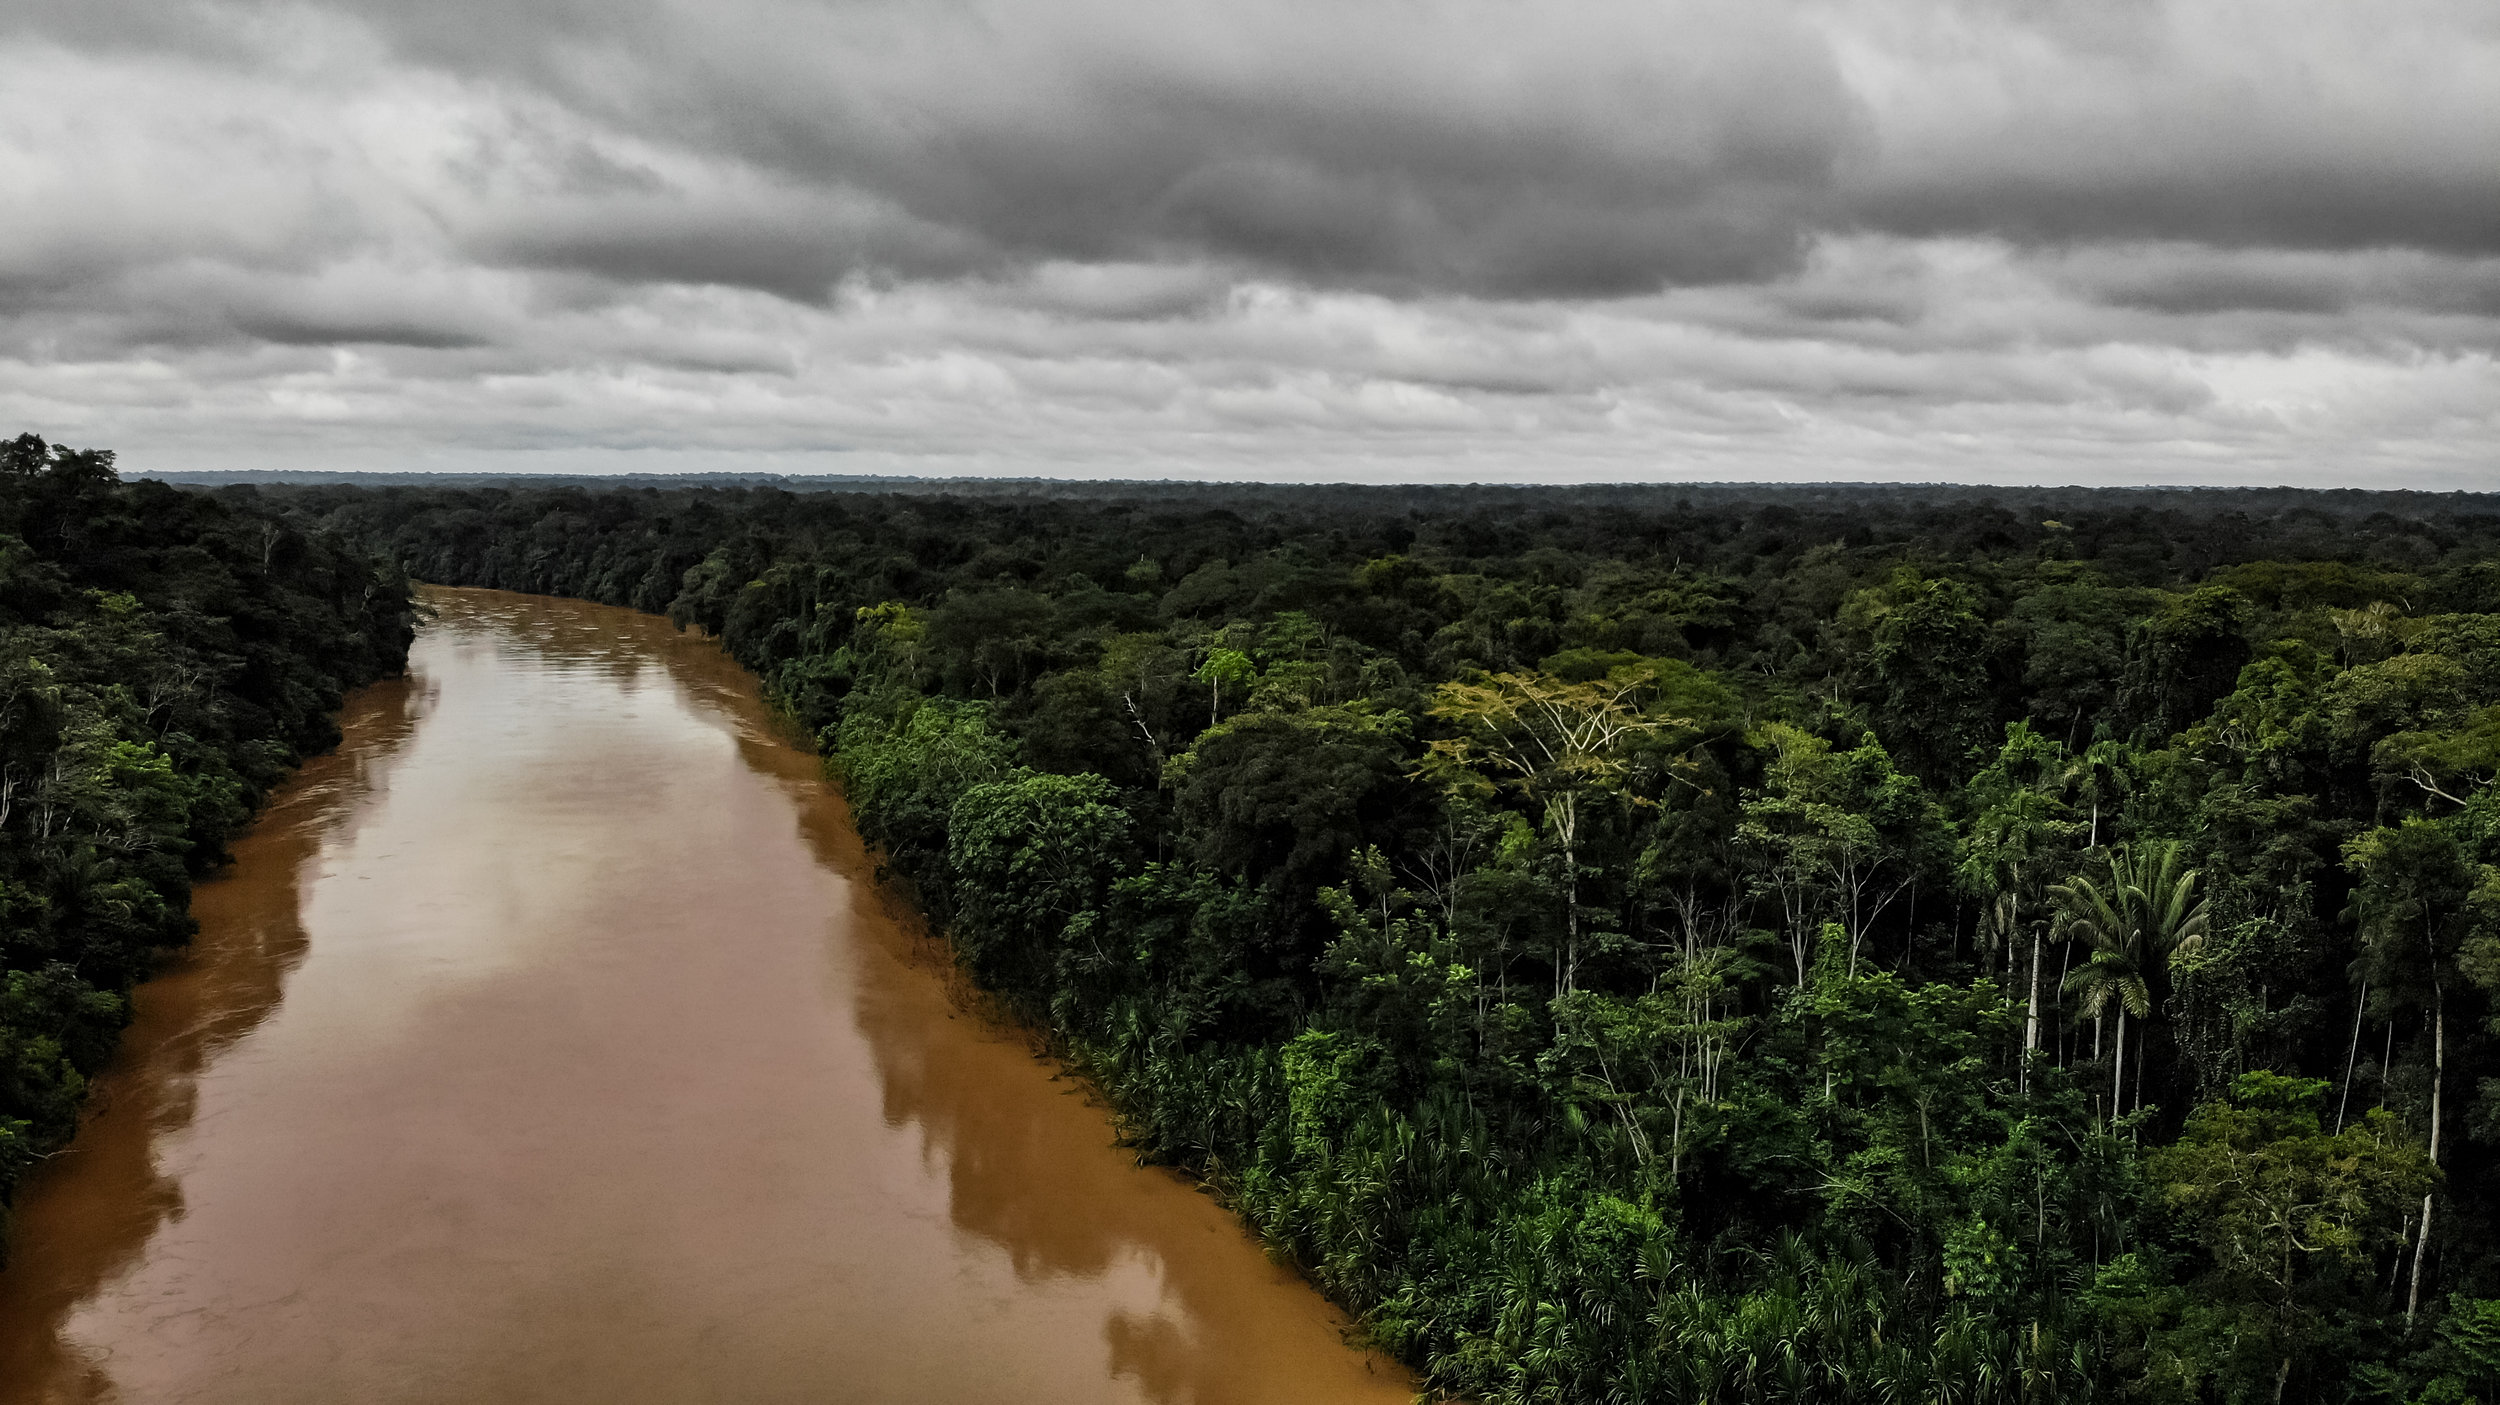 Las Piedras river on a cloudy day